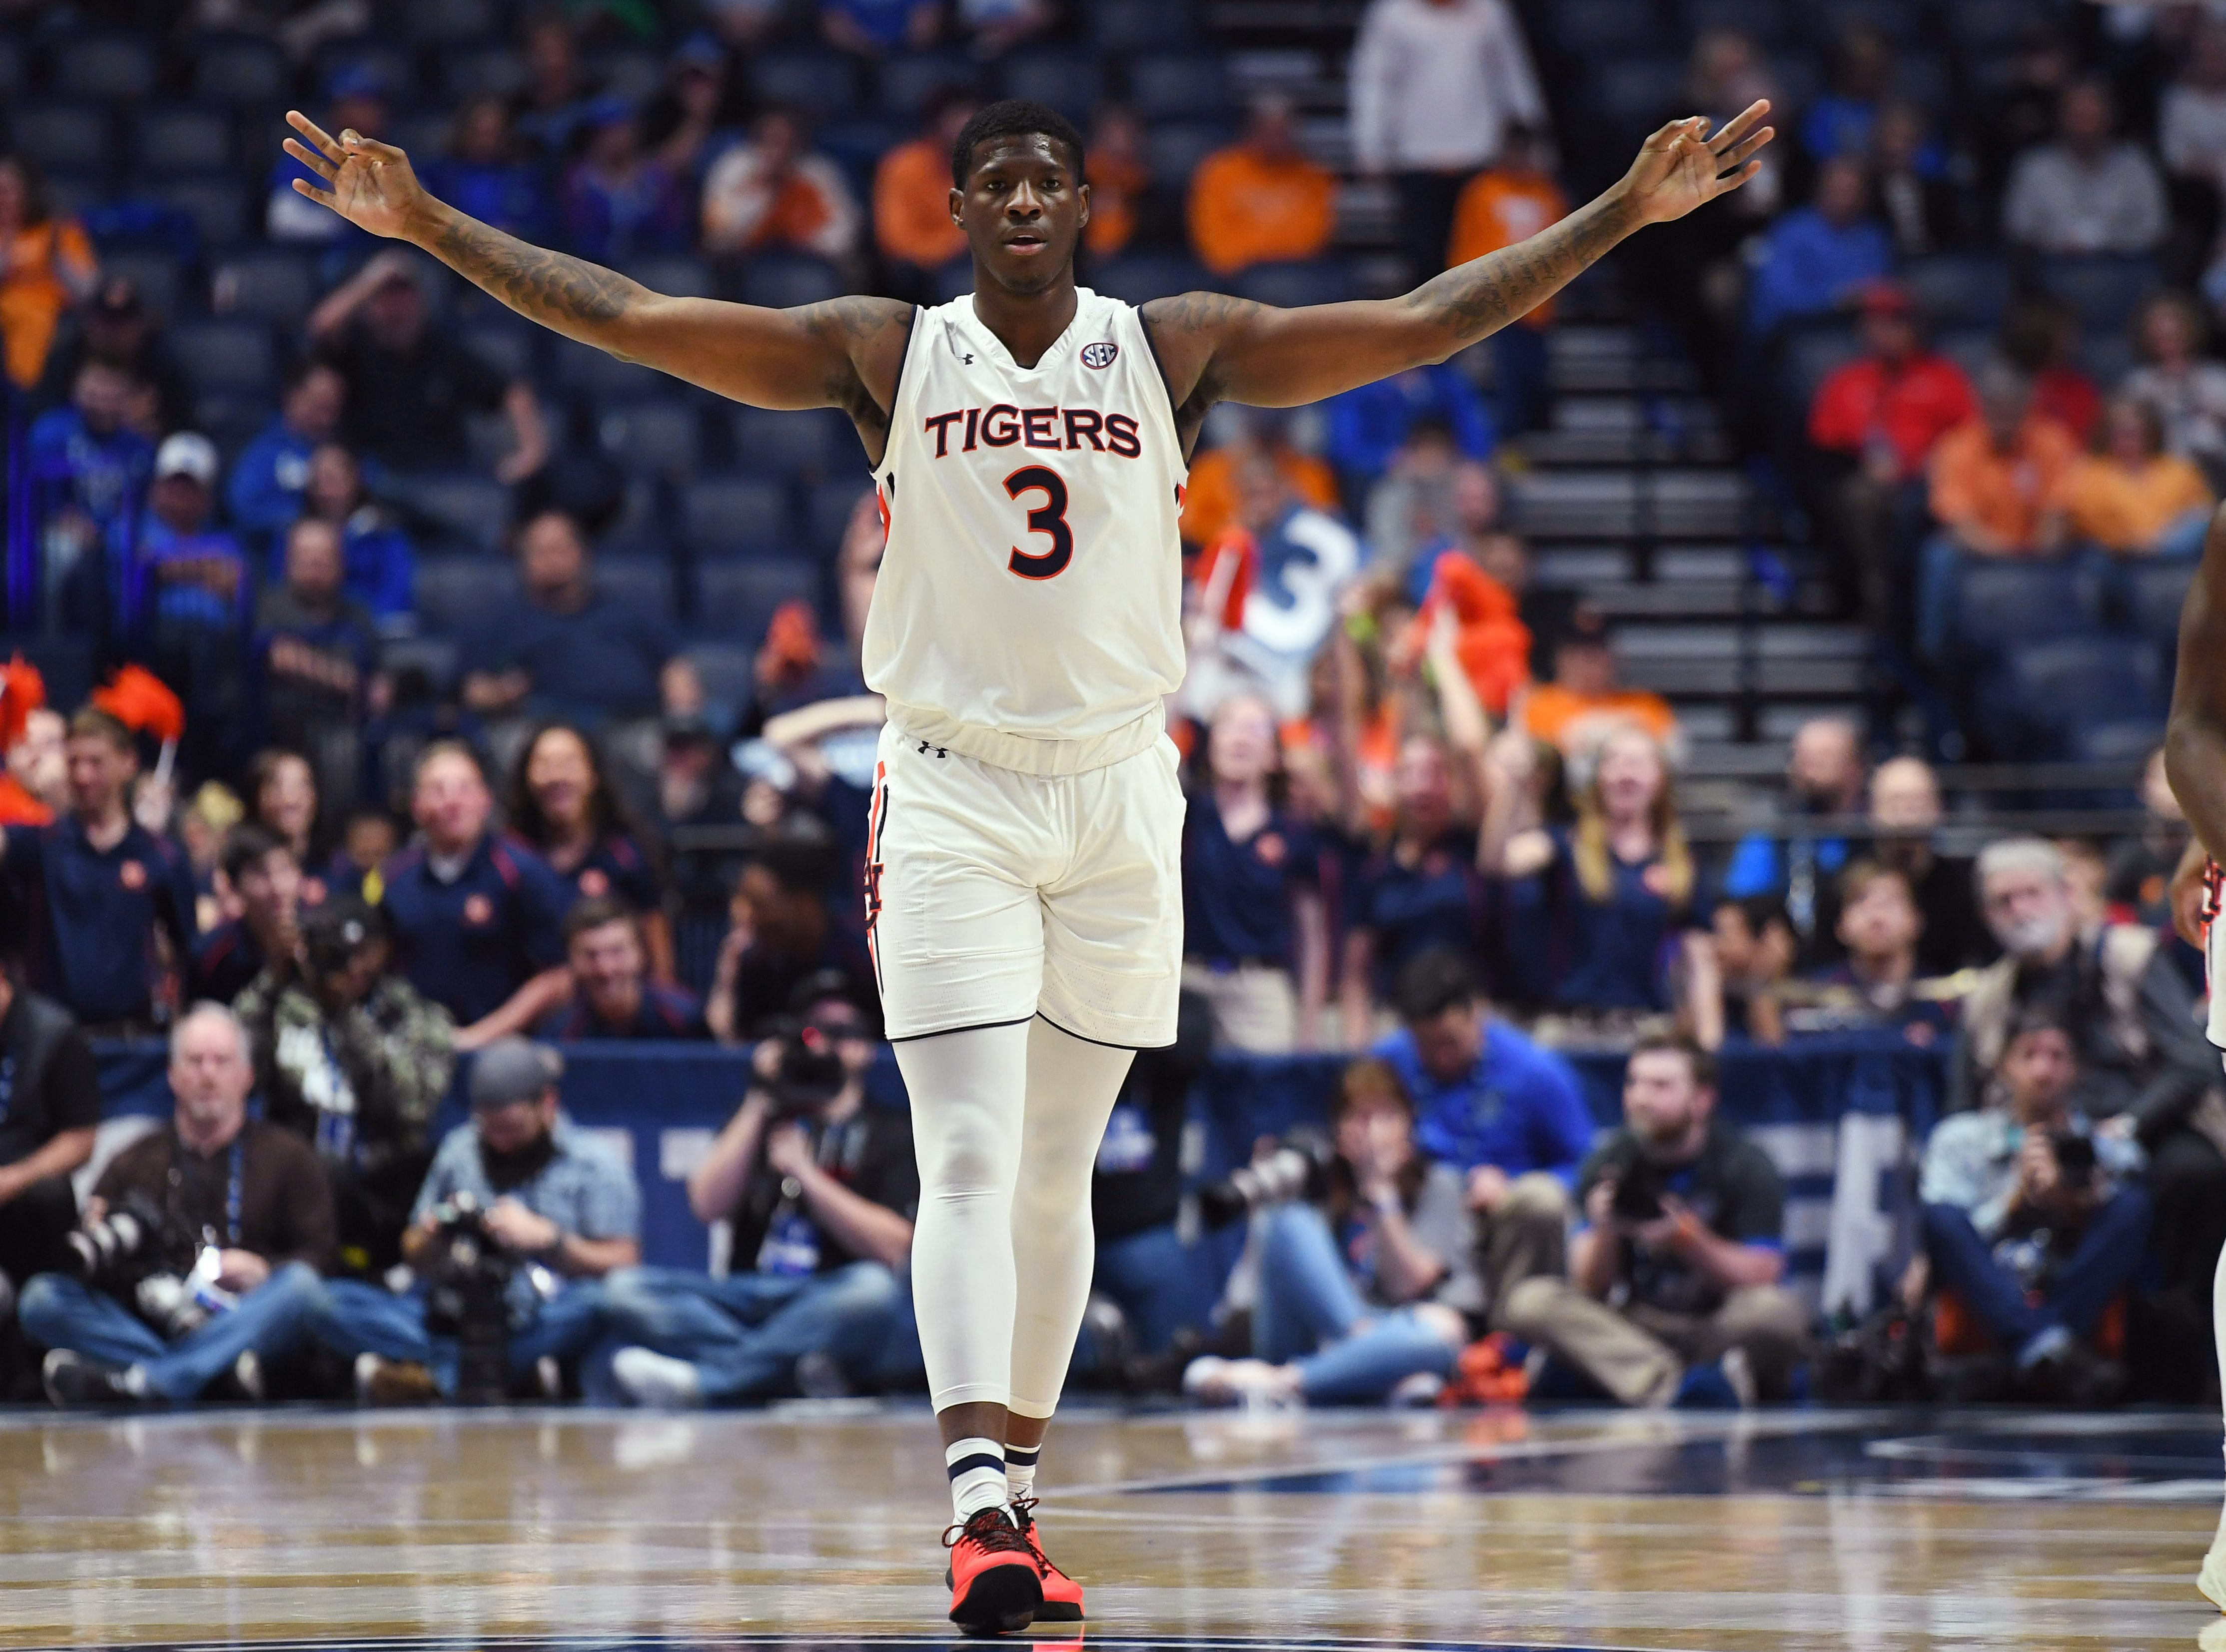 Mar 16, 2019; Nashville, TN, USA; Auburn Tigers forward Danjel Purifoy (3) celebrates after scoring during the first half against the Florida Gators in the SEC conference tournament at Bridgestone Arena. Mandatory Credit: Christopher Hanewinckel-USA TODAY Sports